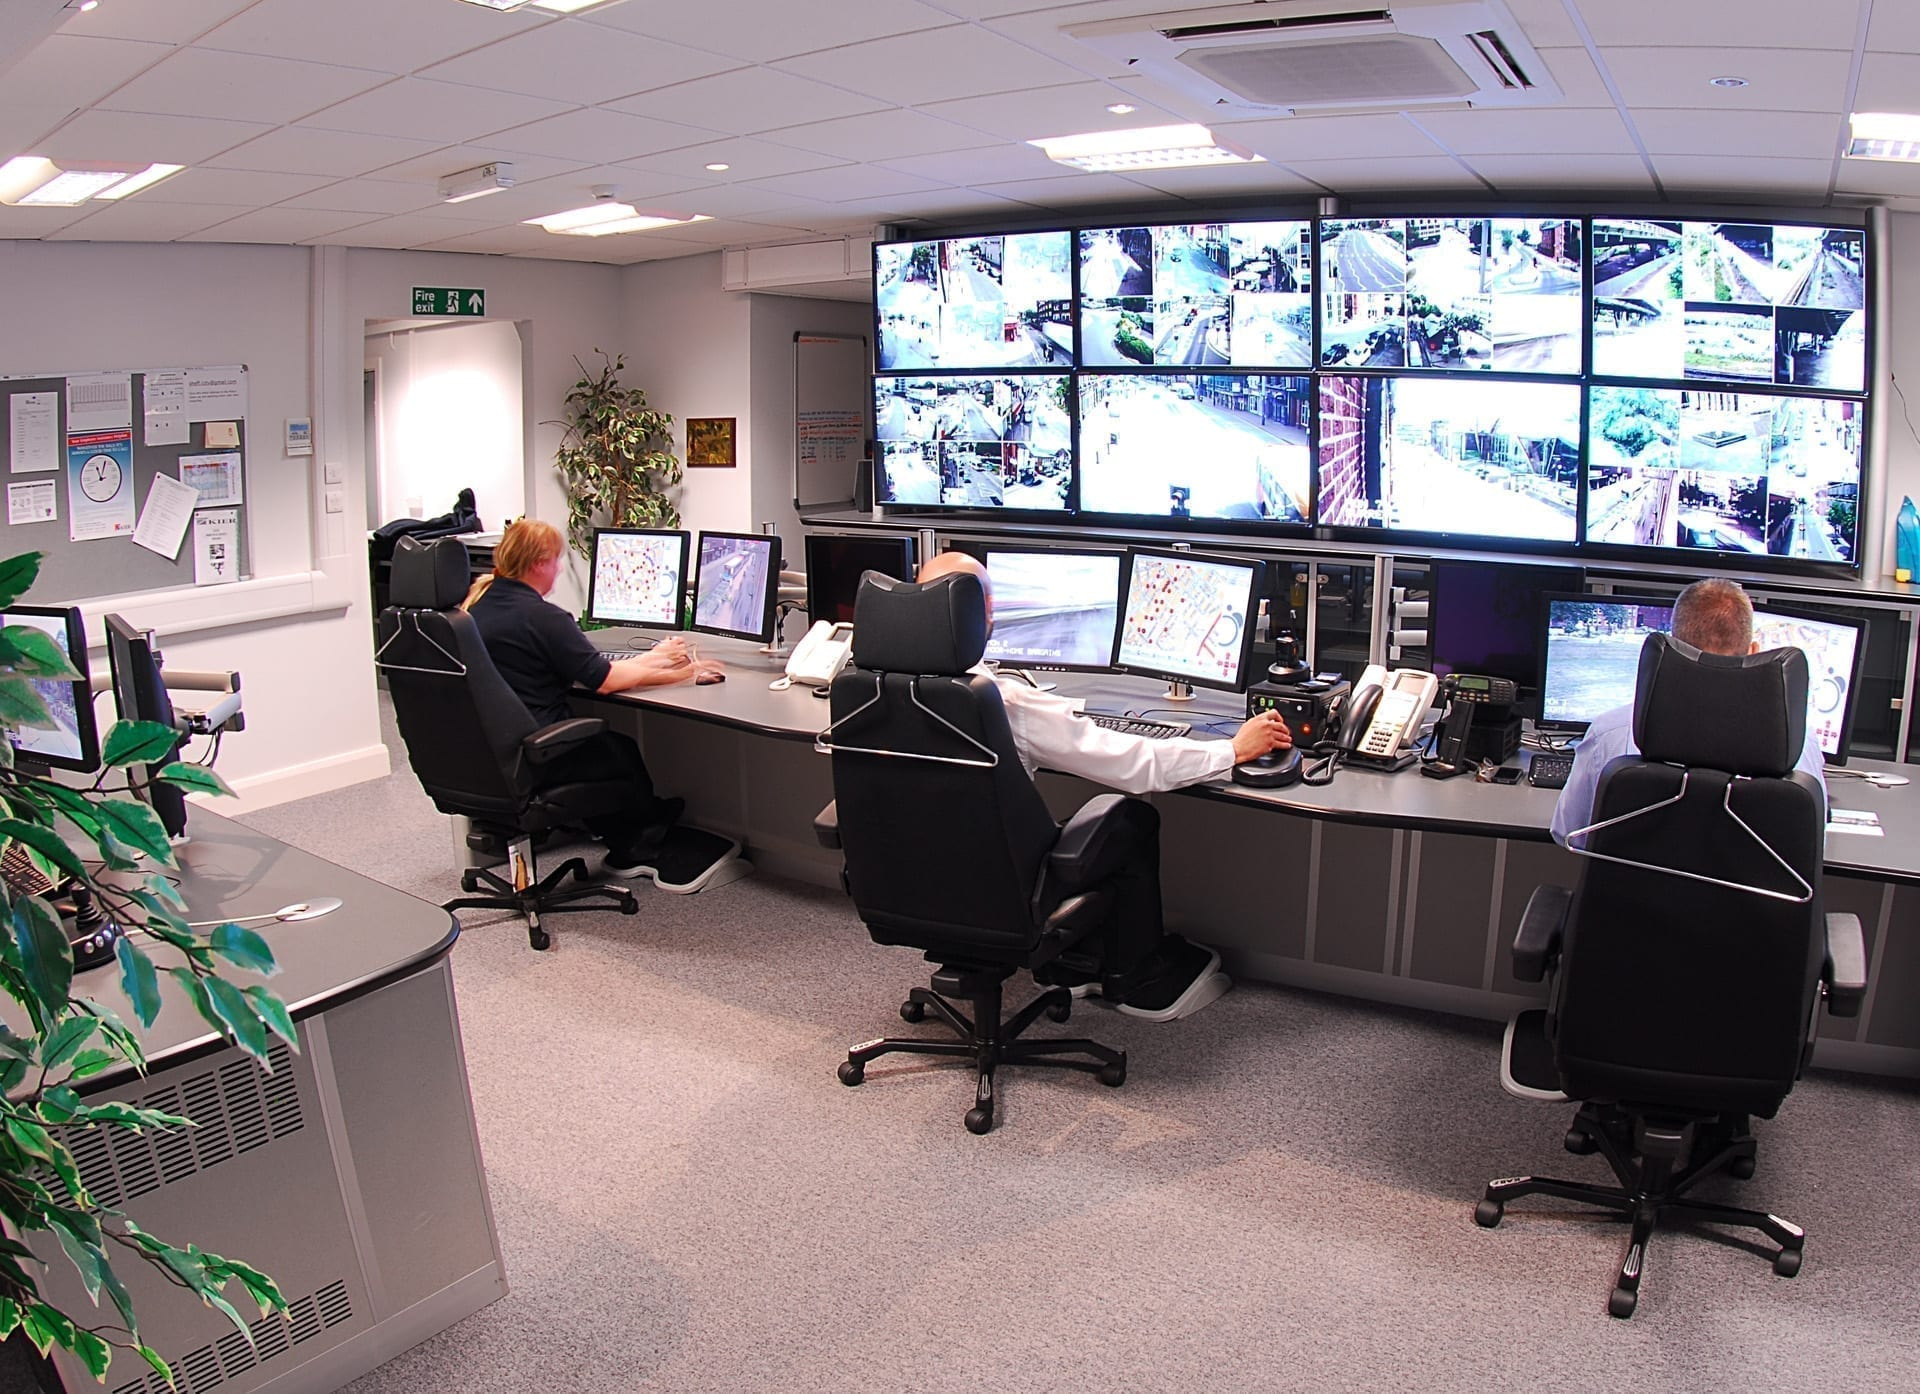 Case Study Cctv Amp Traffic Centre Sheffield City Council Thinking Space Systems